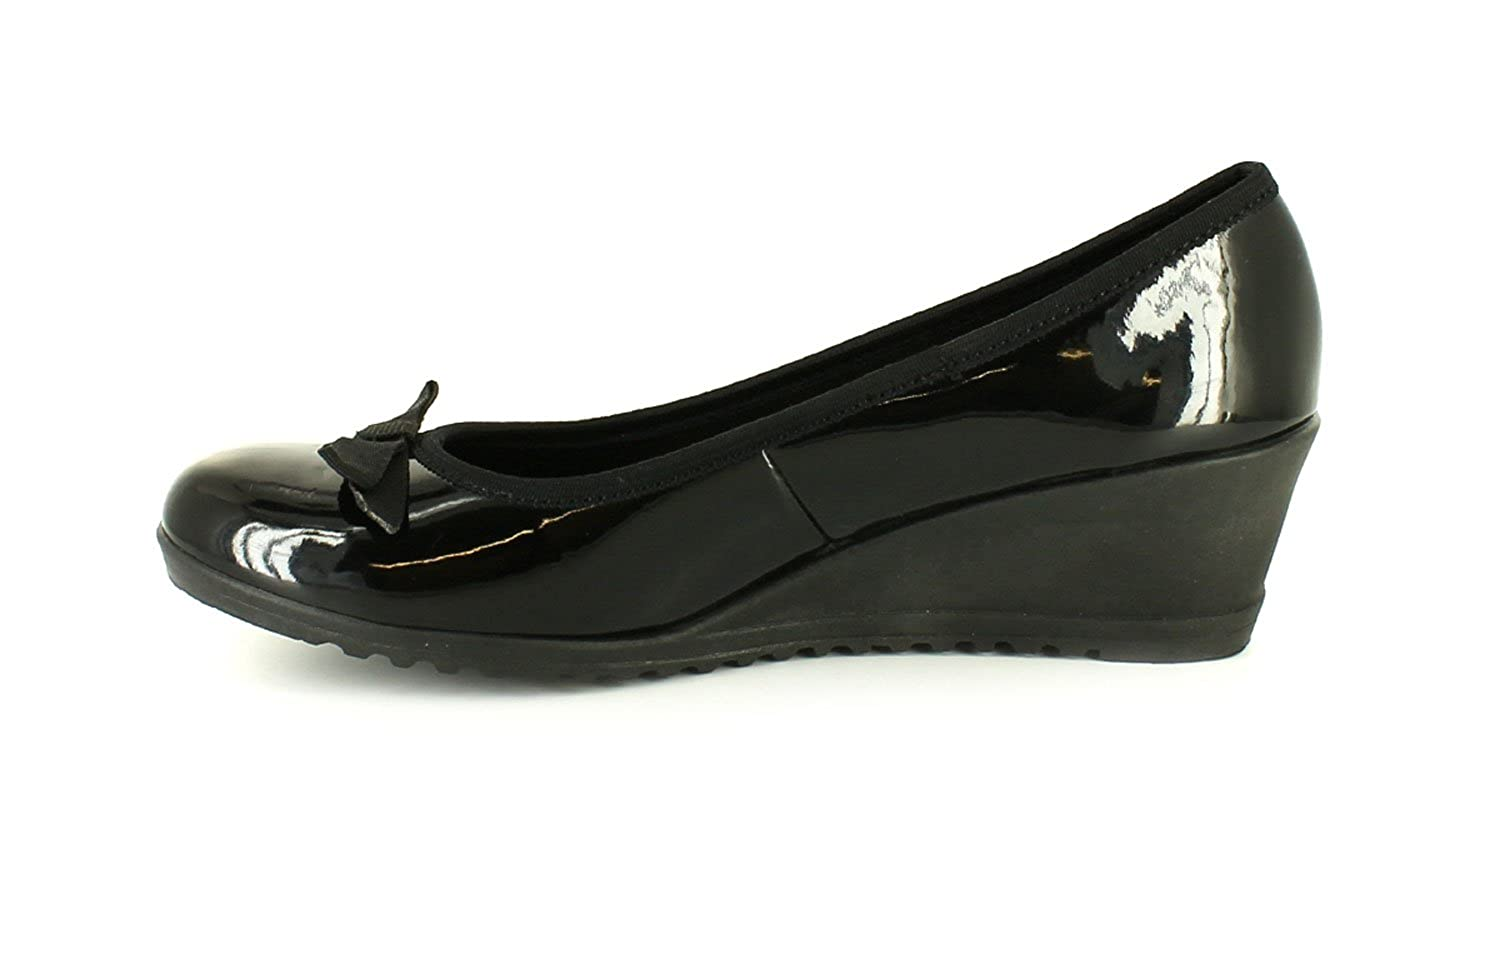 Platino Harriet Womens Wedge Shoes Black - Black - UK SIZE 8: Amazon.co.uk:  Shoes & Bags